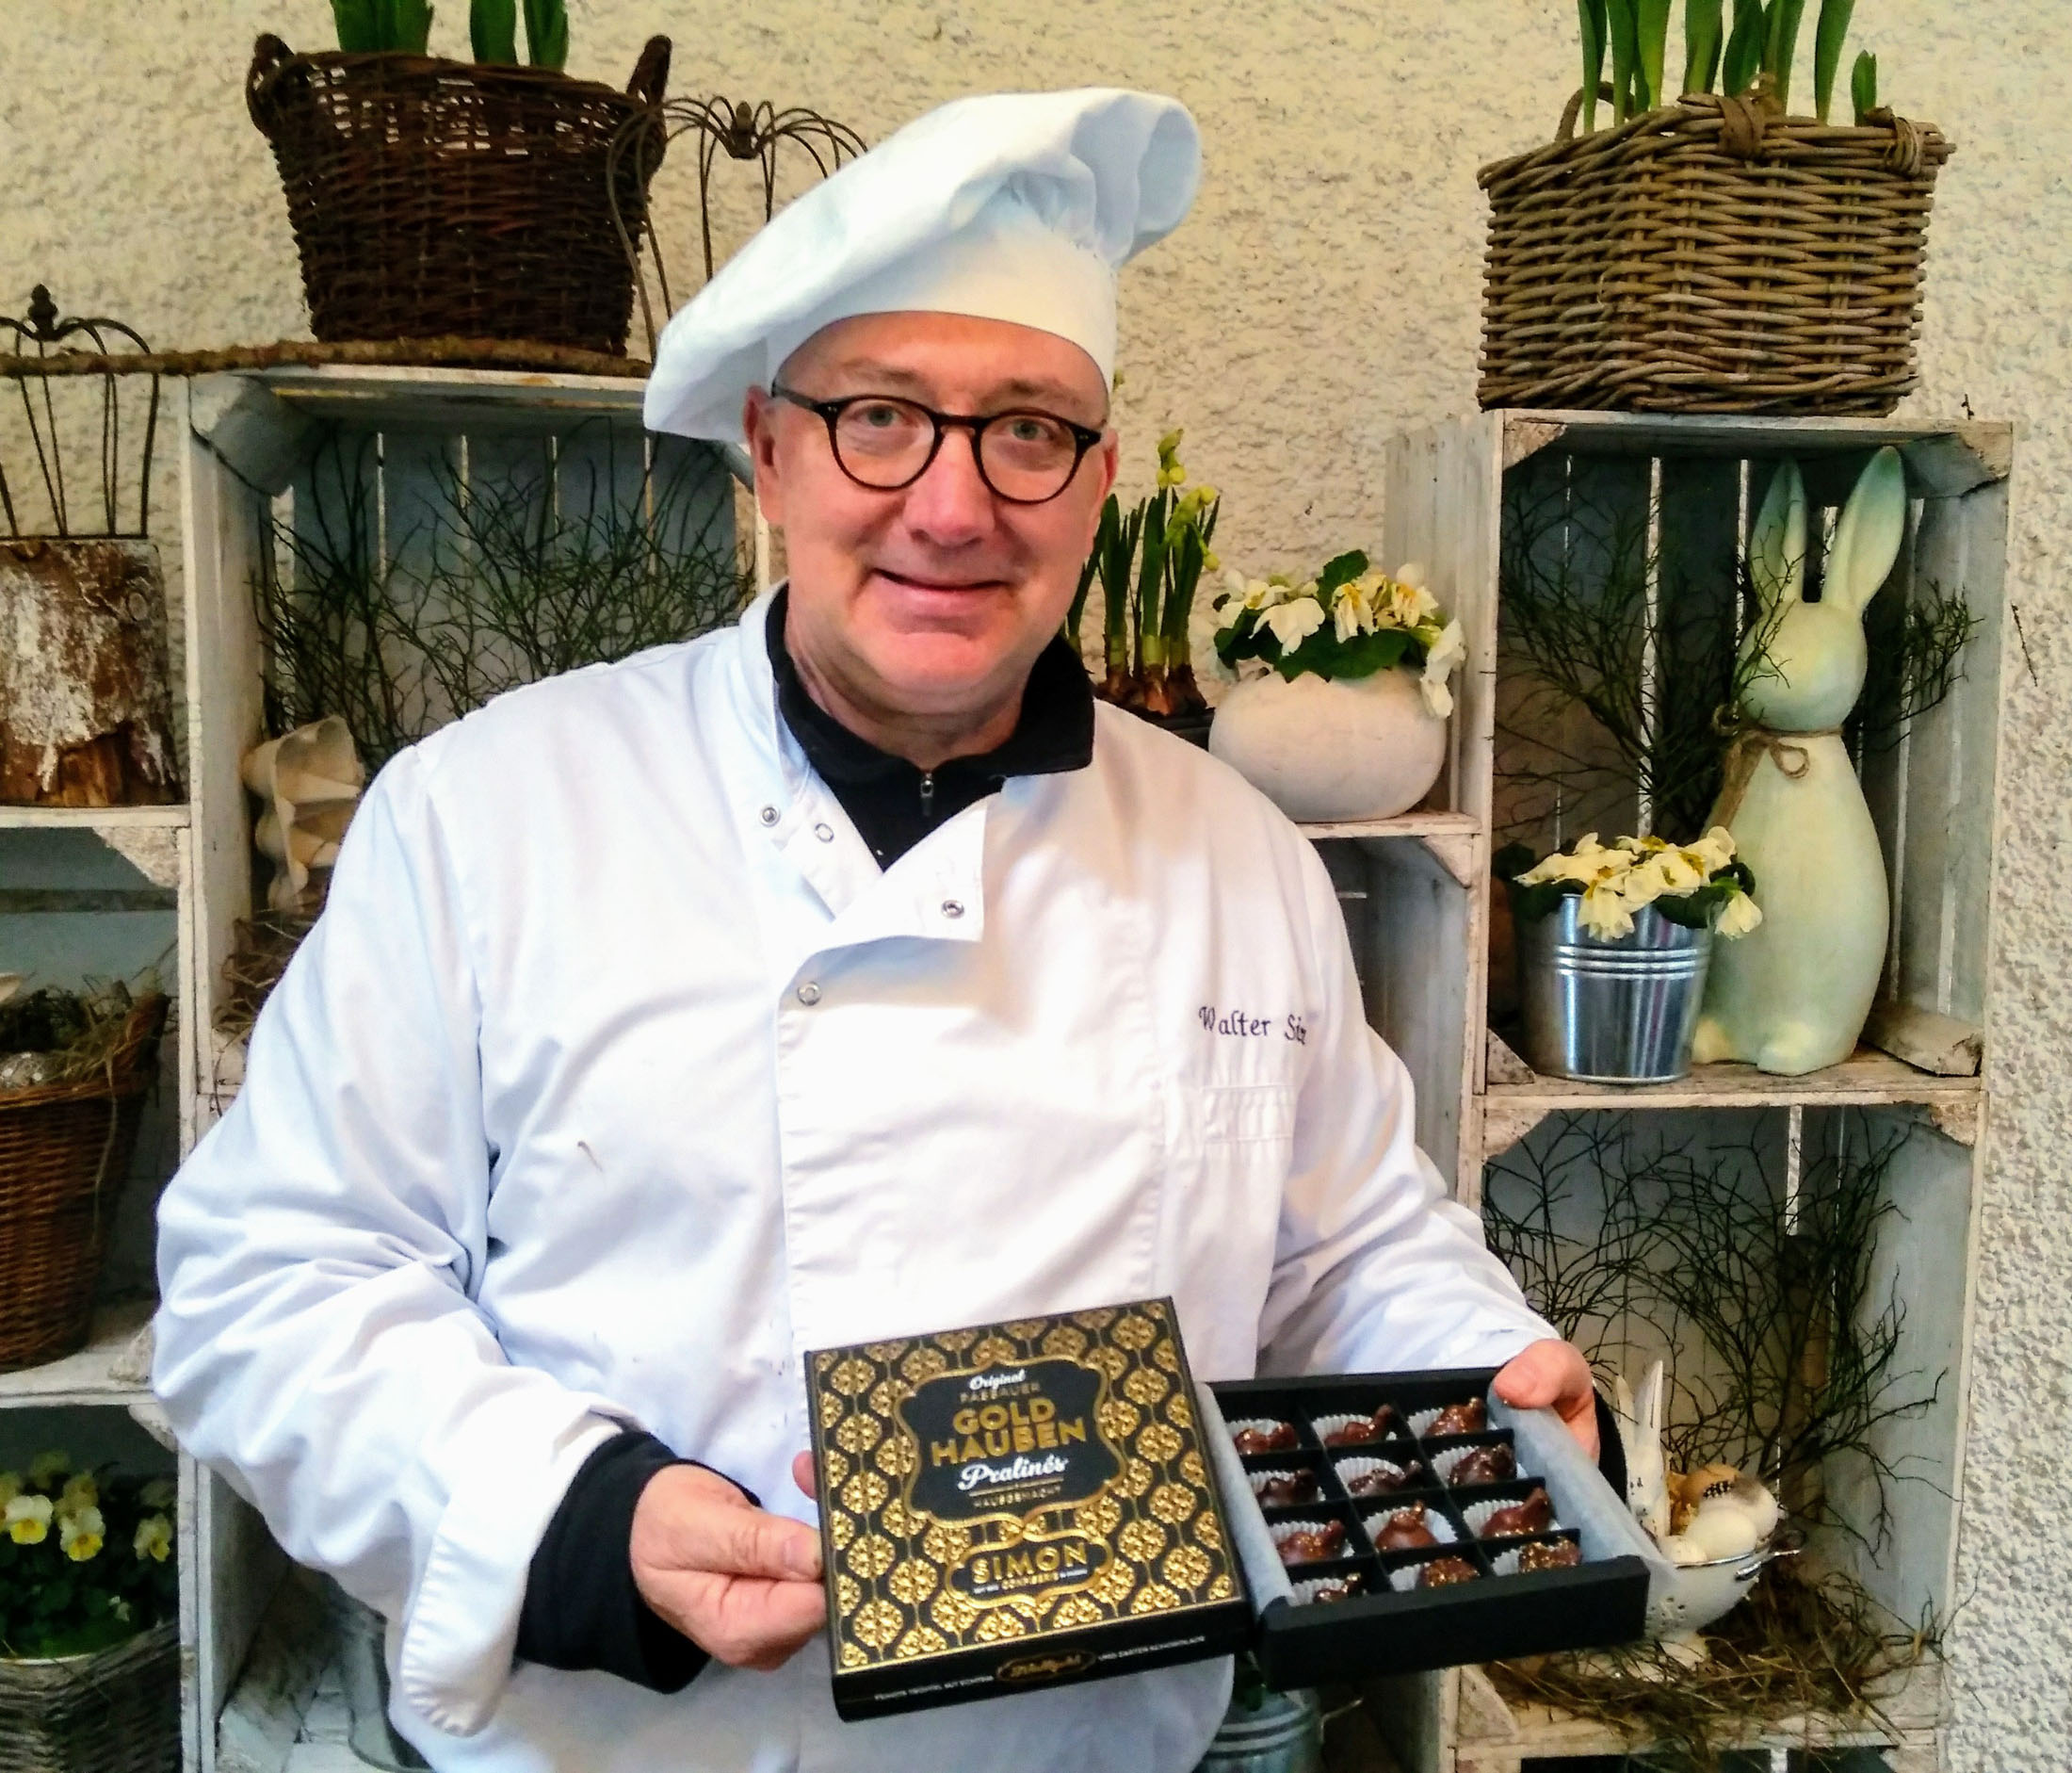 Learn to make your own chocolate at confiserie Simon in Passau